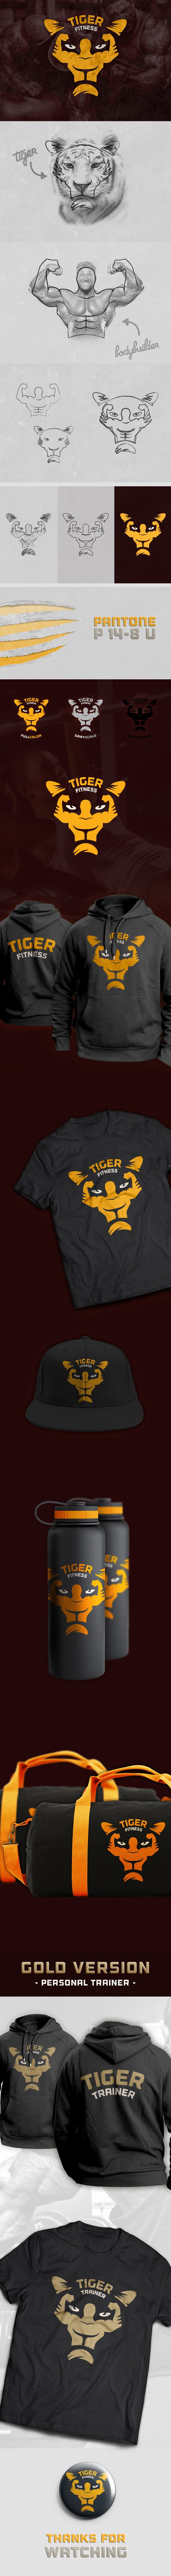 Tiger Fitness Center #inspiration #design #brand #identity #logo